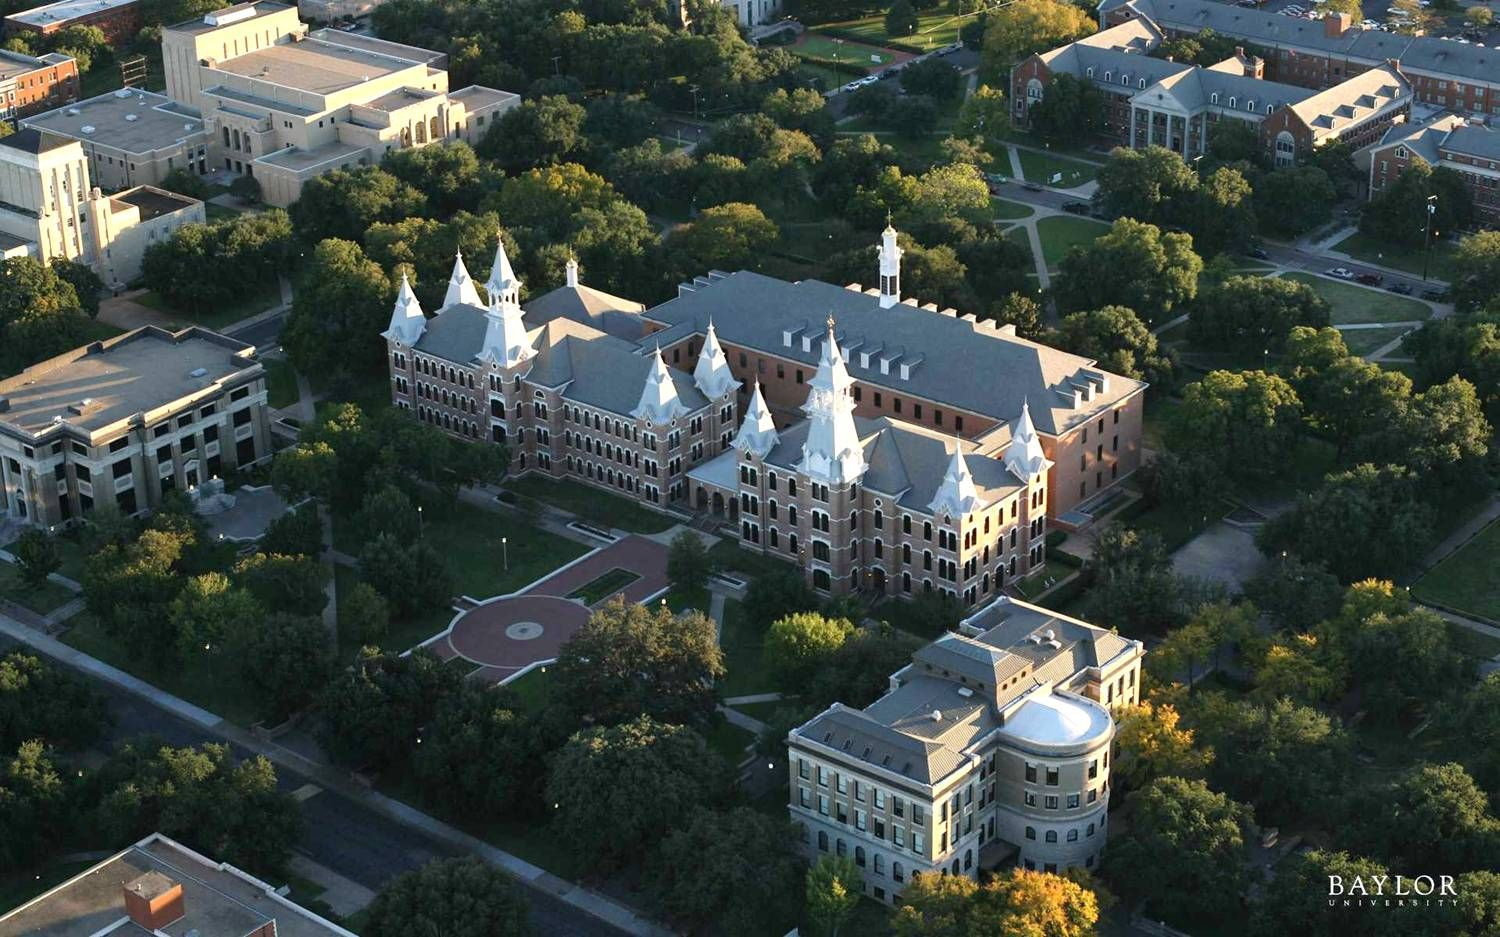 What are my chances of getting into UT Austin, Boston University and Baylor University?